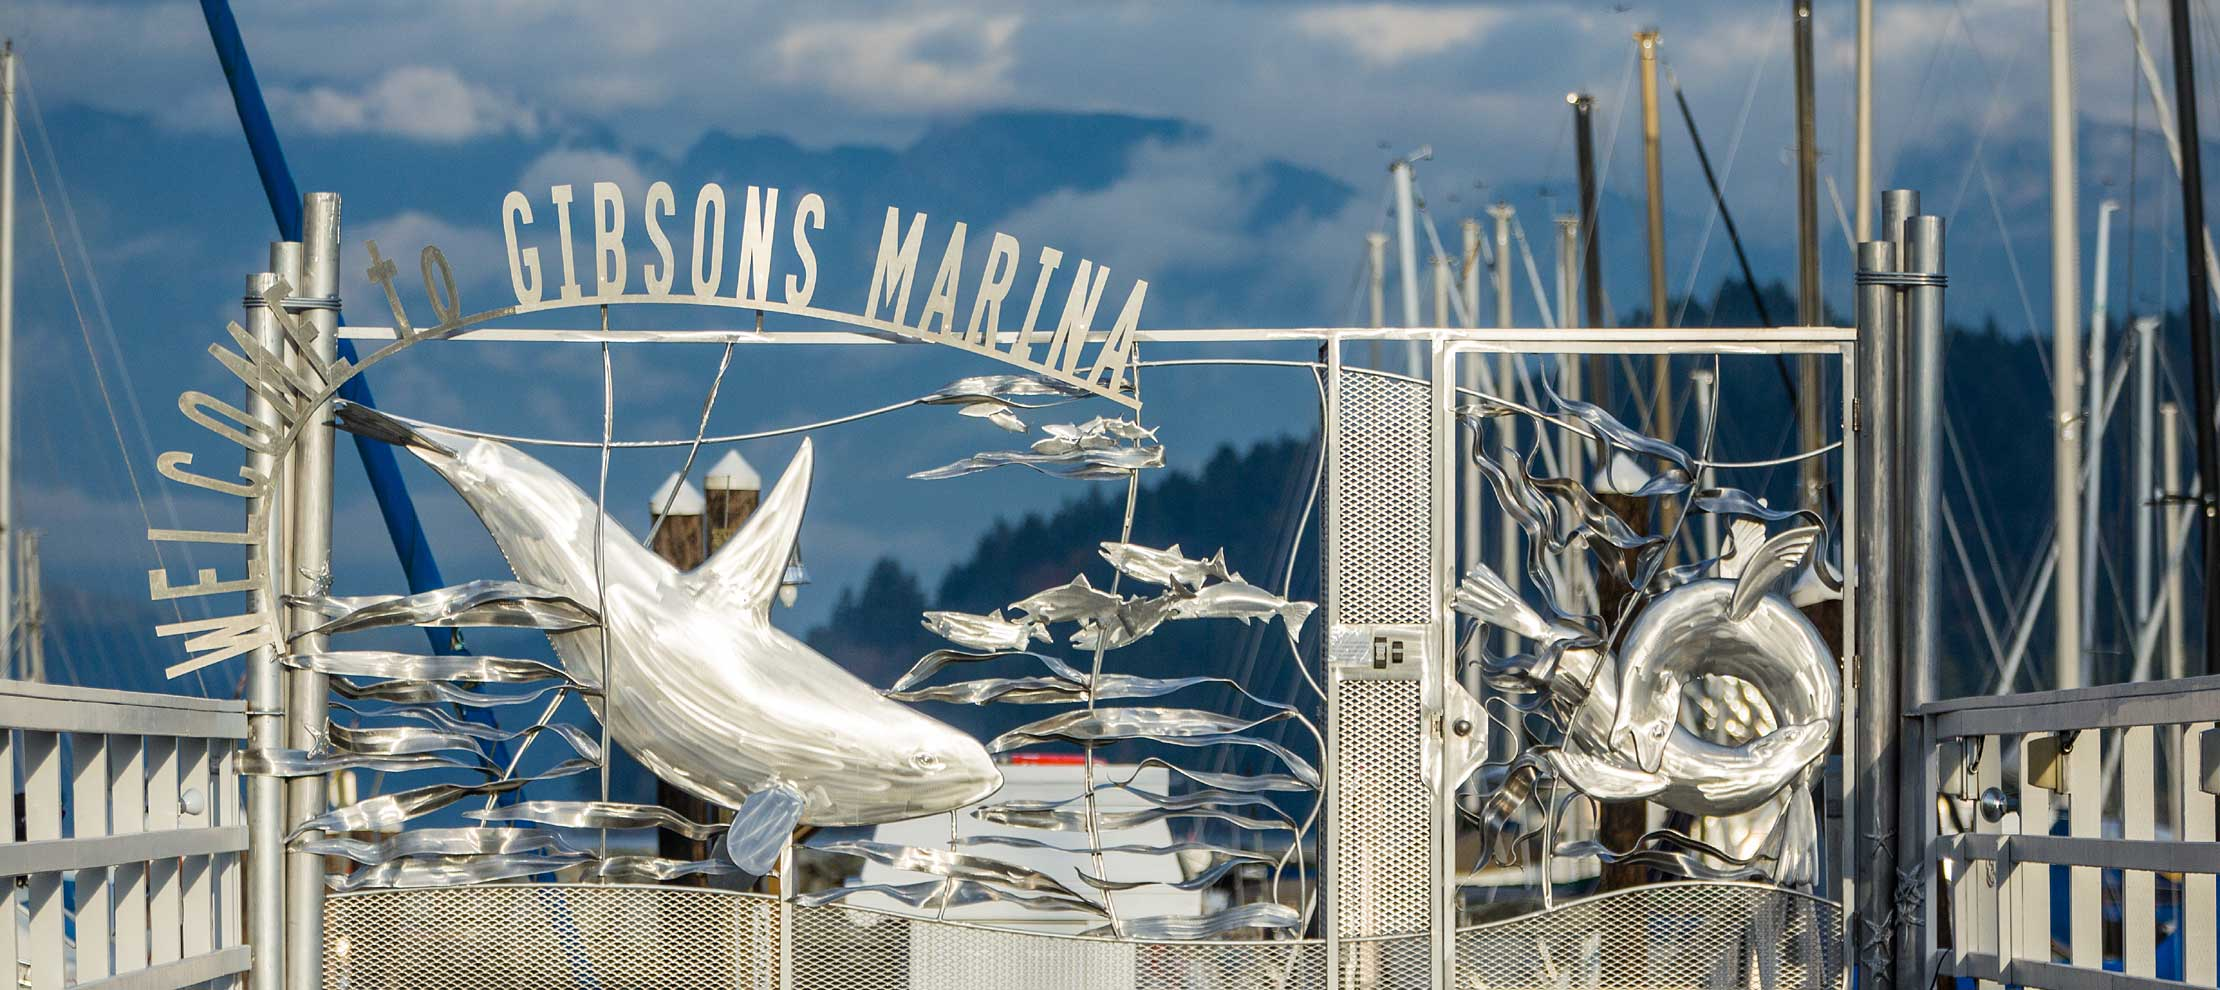 Welcome to Gibsons Marina